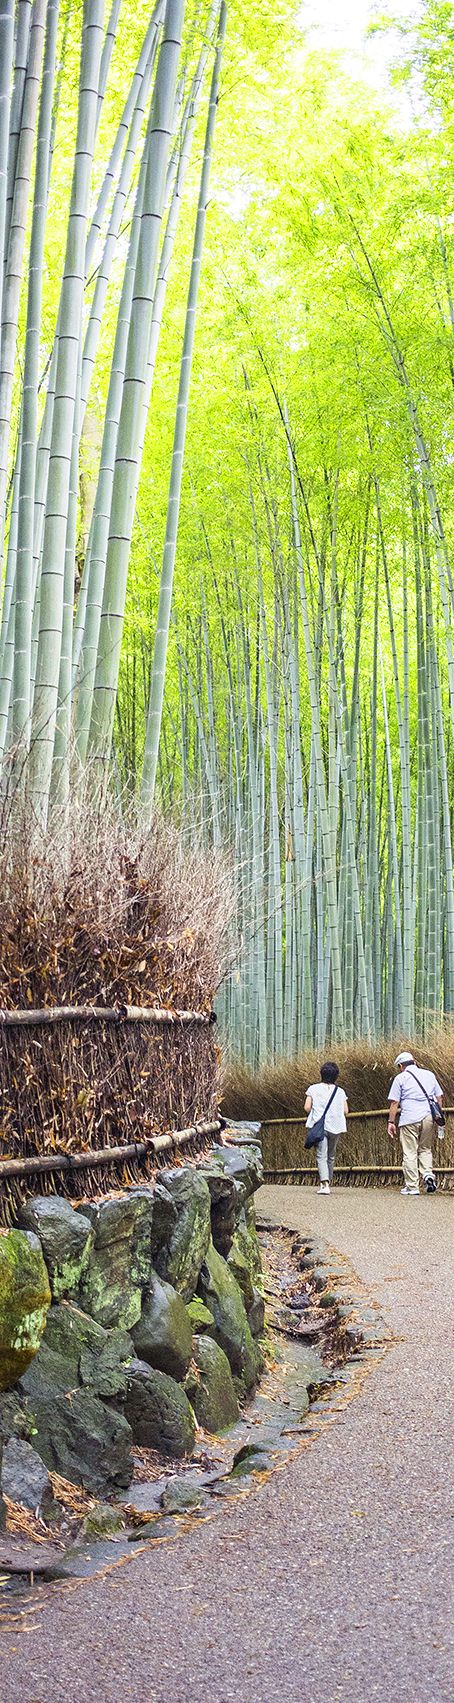 Arashiyama Bamboo Grove #Kyoto; an atmospheric 200 metre path through swathes of stories high bamboo. Best viewed as a breeze ripples through the dark green bamboo, it's particularly stunning in December when the groves are illuminated by traditional lanterns.